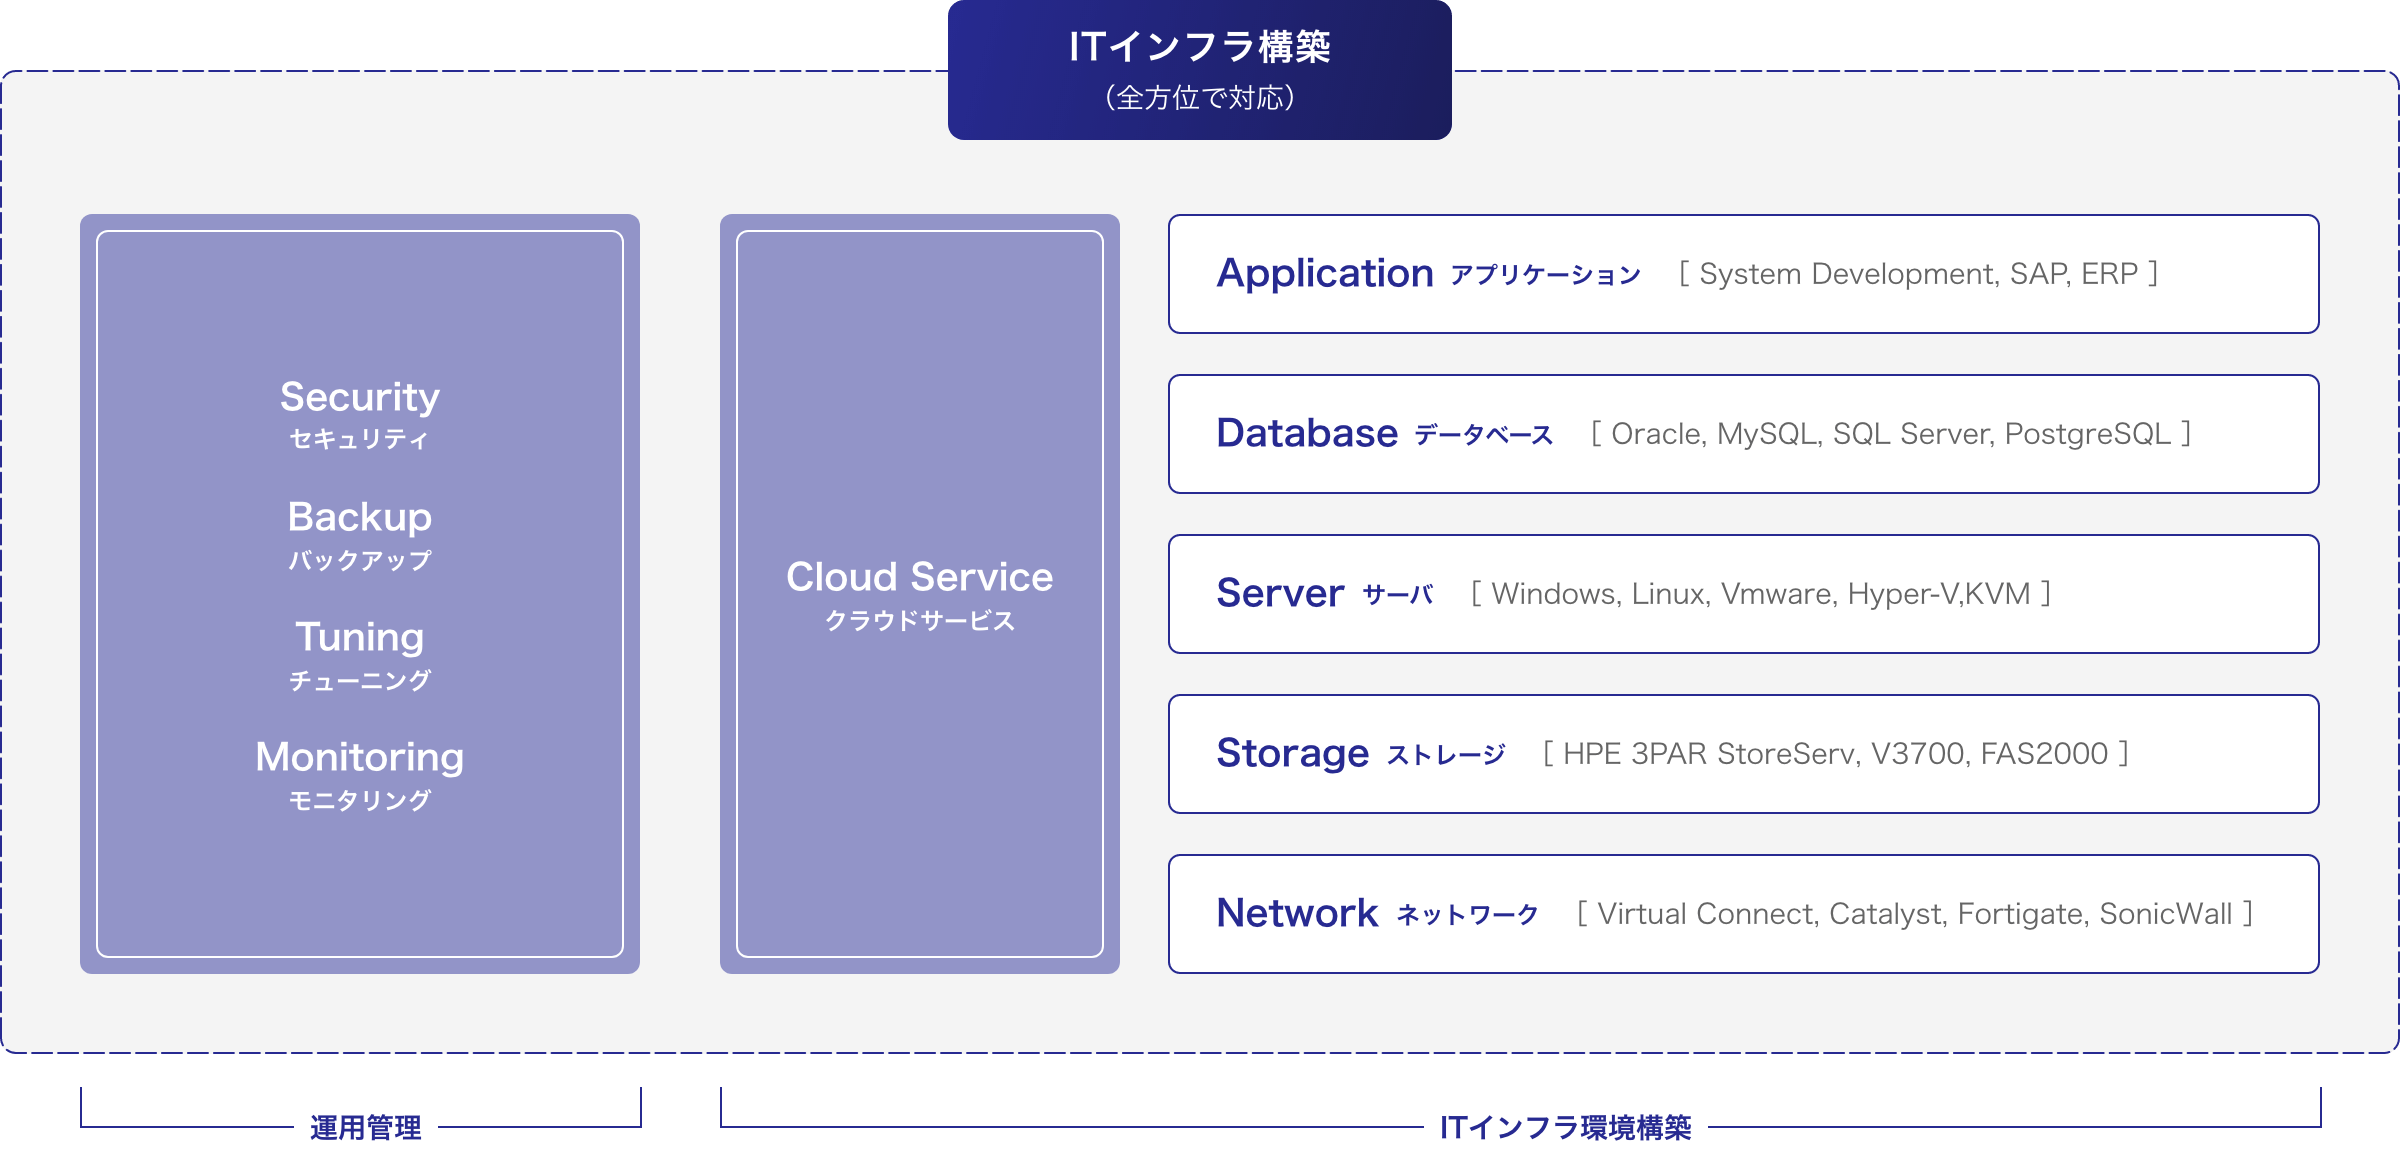 ITインフラ構築 (全方位で対応)Securityセキュリティ Backupバックアップ Tuningチューニング Monitoringモニタリング Cloud Serviceクラウドサービス Applicationアプリケーション[ System Development, SAP, ERP ]Databaseデータベース [ Oracle, MySQL, SQL Server, PostgreSQL ]Serverサーバ [ Windows, Linux, Vmware, Hyper-V,KVM ]Storageストレージ [ HPE 3PAR StoreServ, V3700, FAS2000 ]Networkネットワーク[ Virtual Connect, Catalyst, Fortigate, SonicWall ]運用管理 ITインフラ環境構築